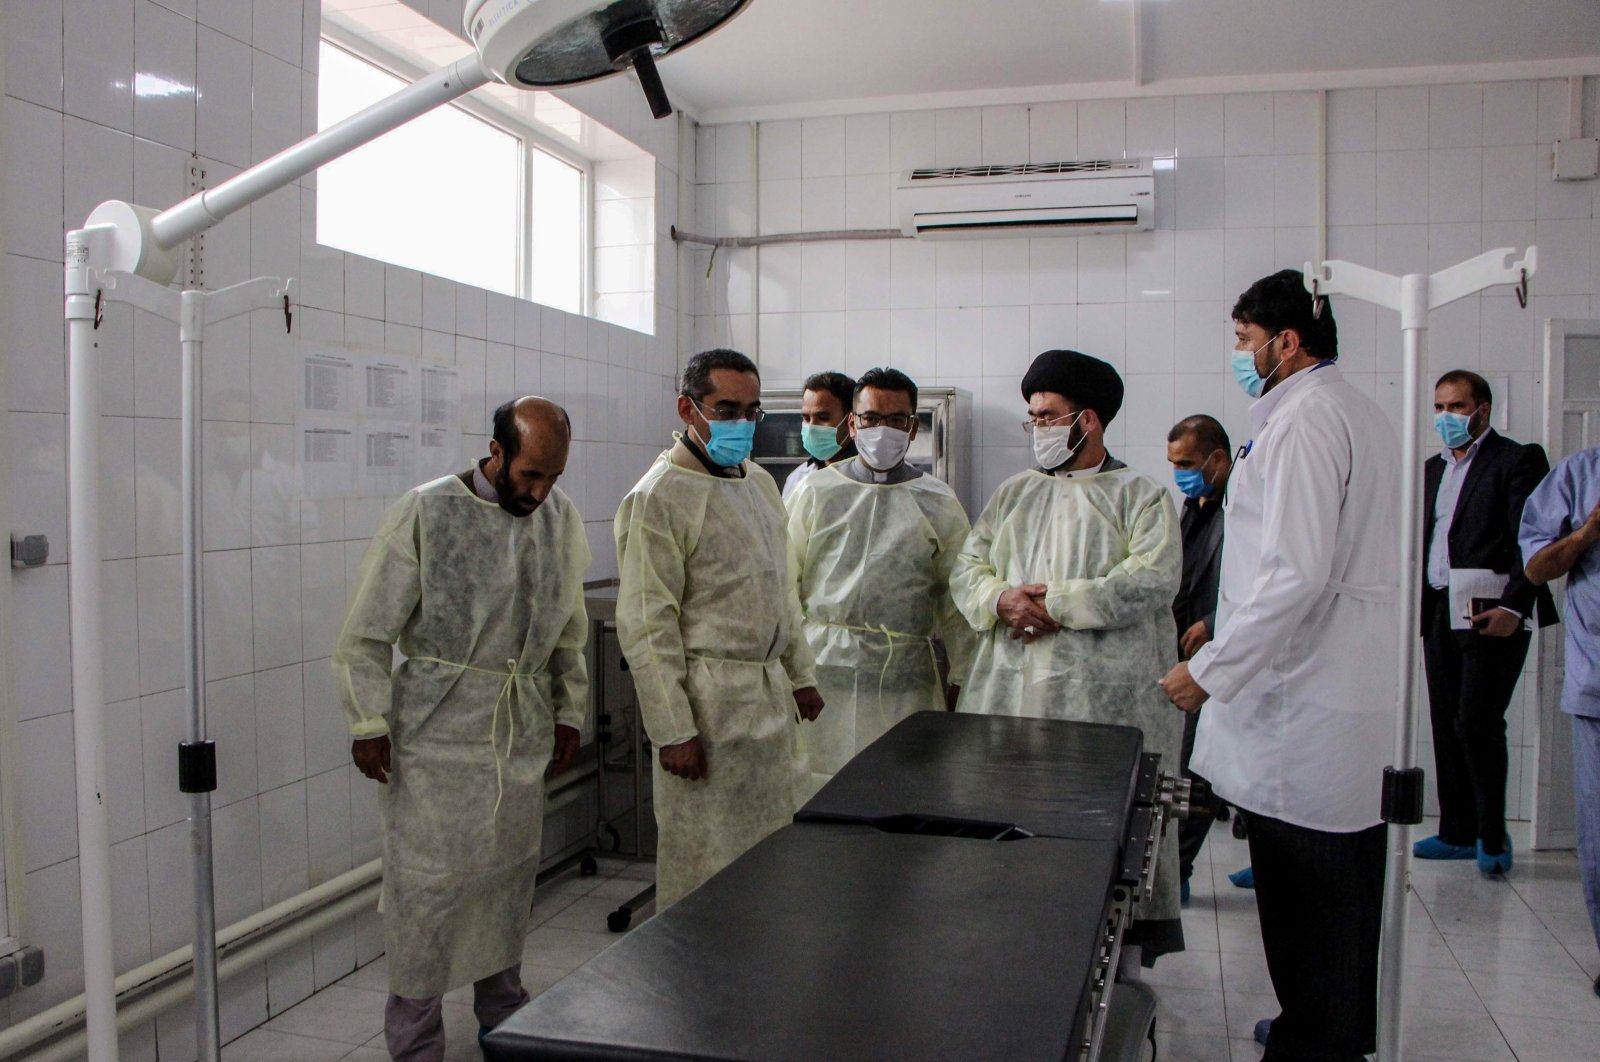 Afghanistan's Health Minister Ahmad Jawad Osmani (2L) visits maternity rooms during the inauguration reopening ceremony of a medical ward at MSF Hospital, Kabul, July 1, 2020. (AFP Photo)